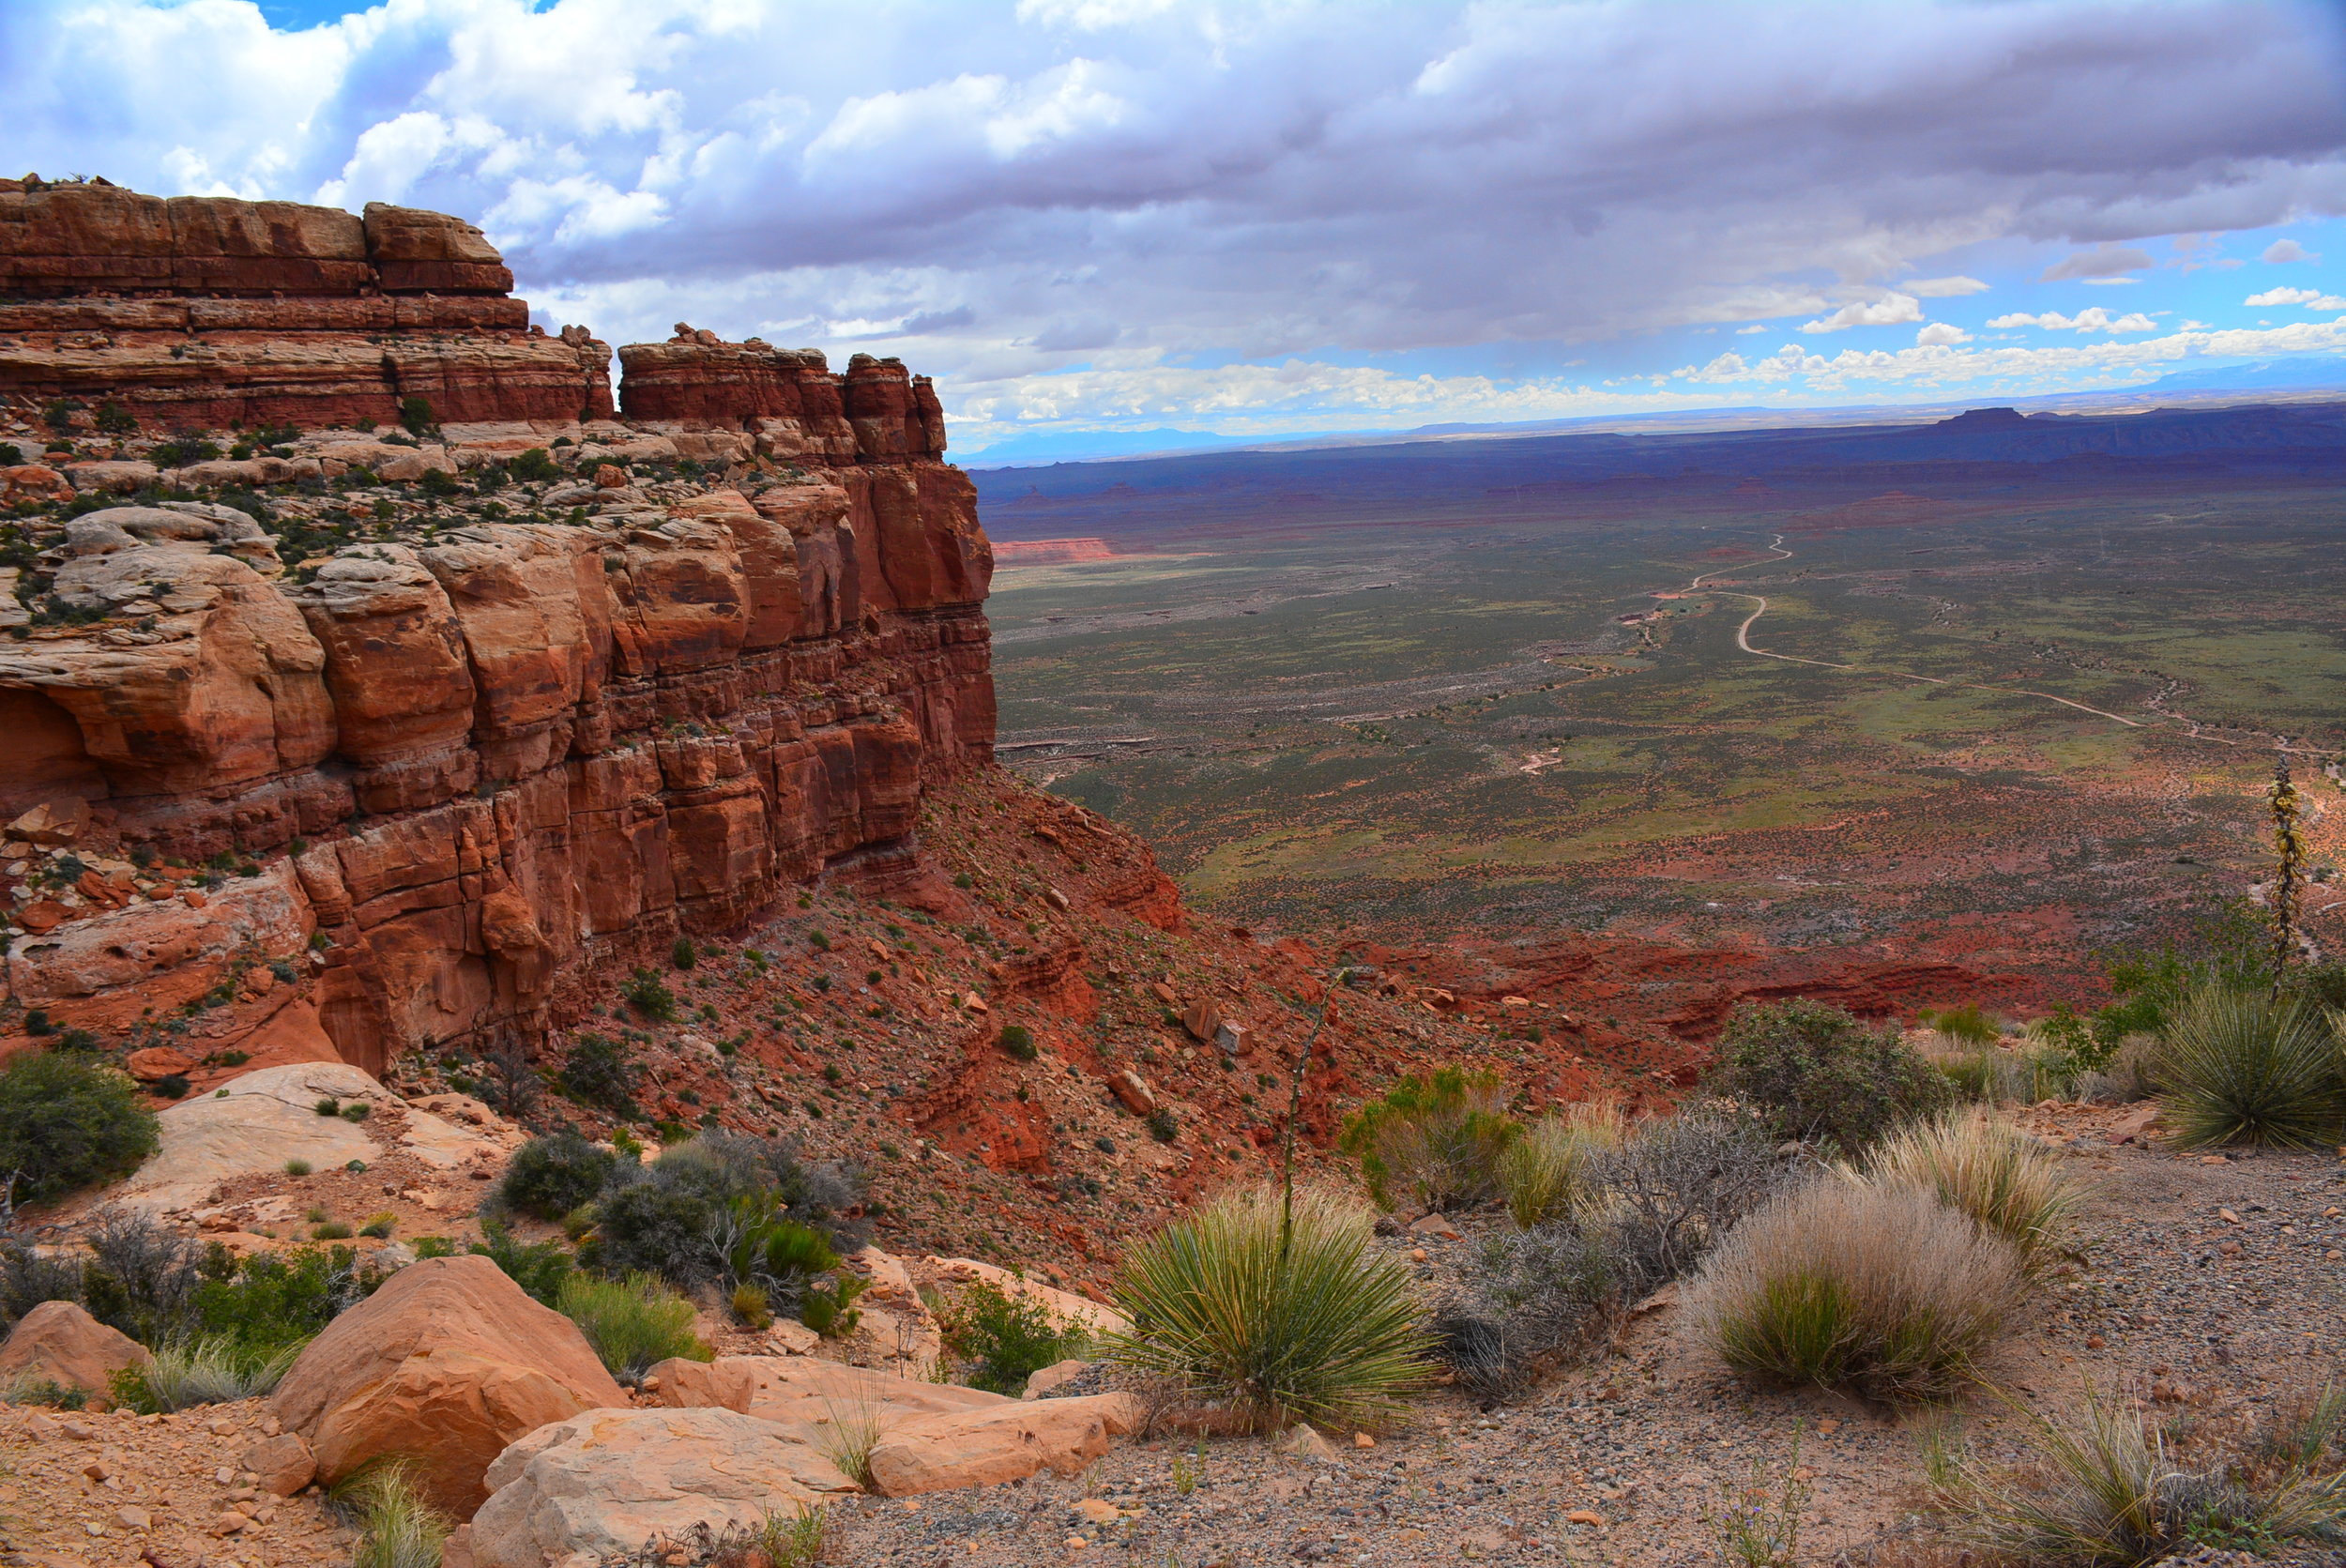 Near the top of the Moki Dugway -Valley of the Gods below